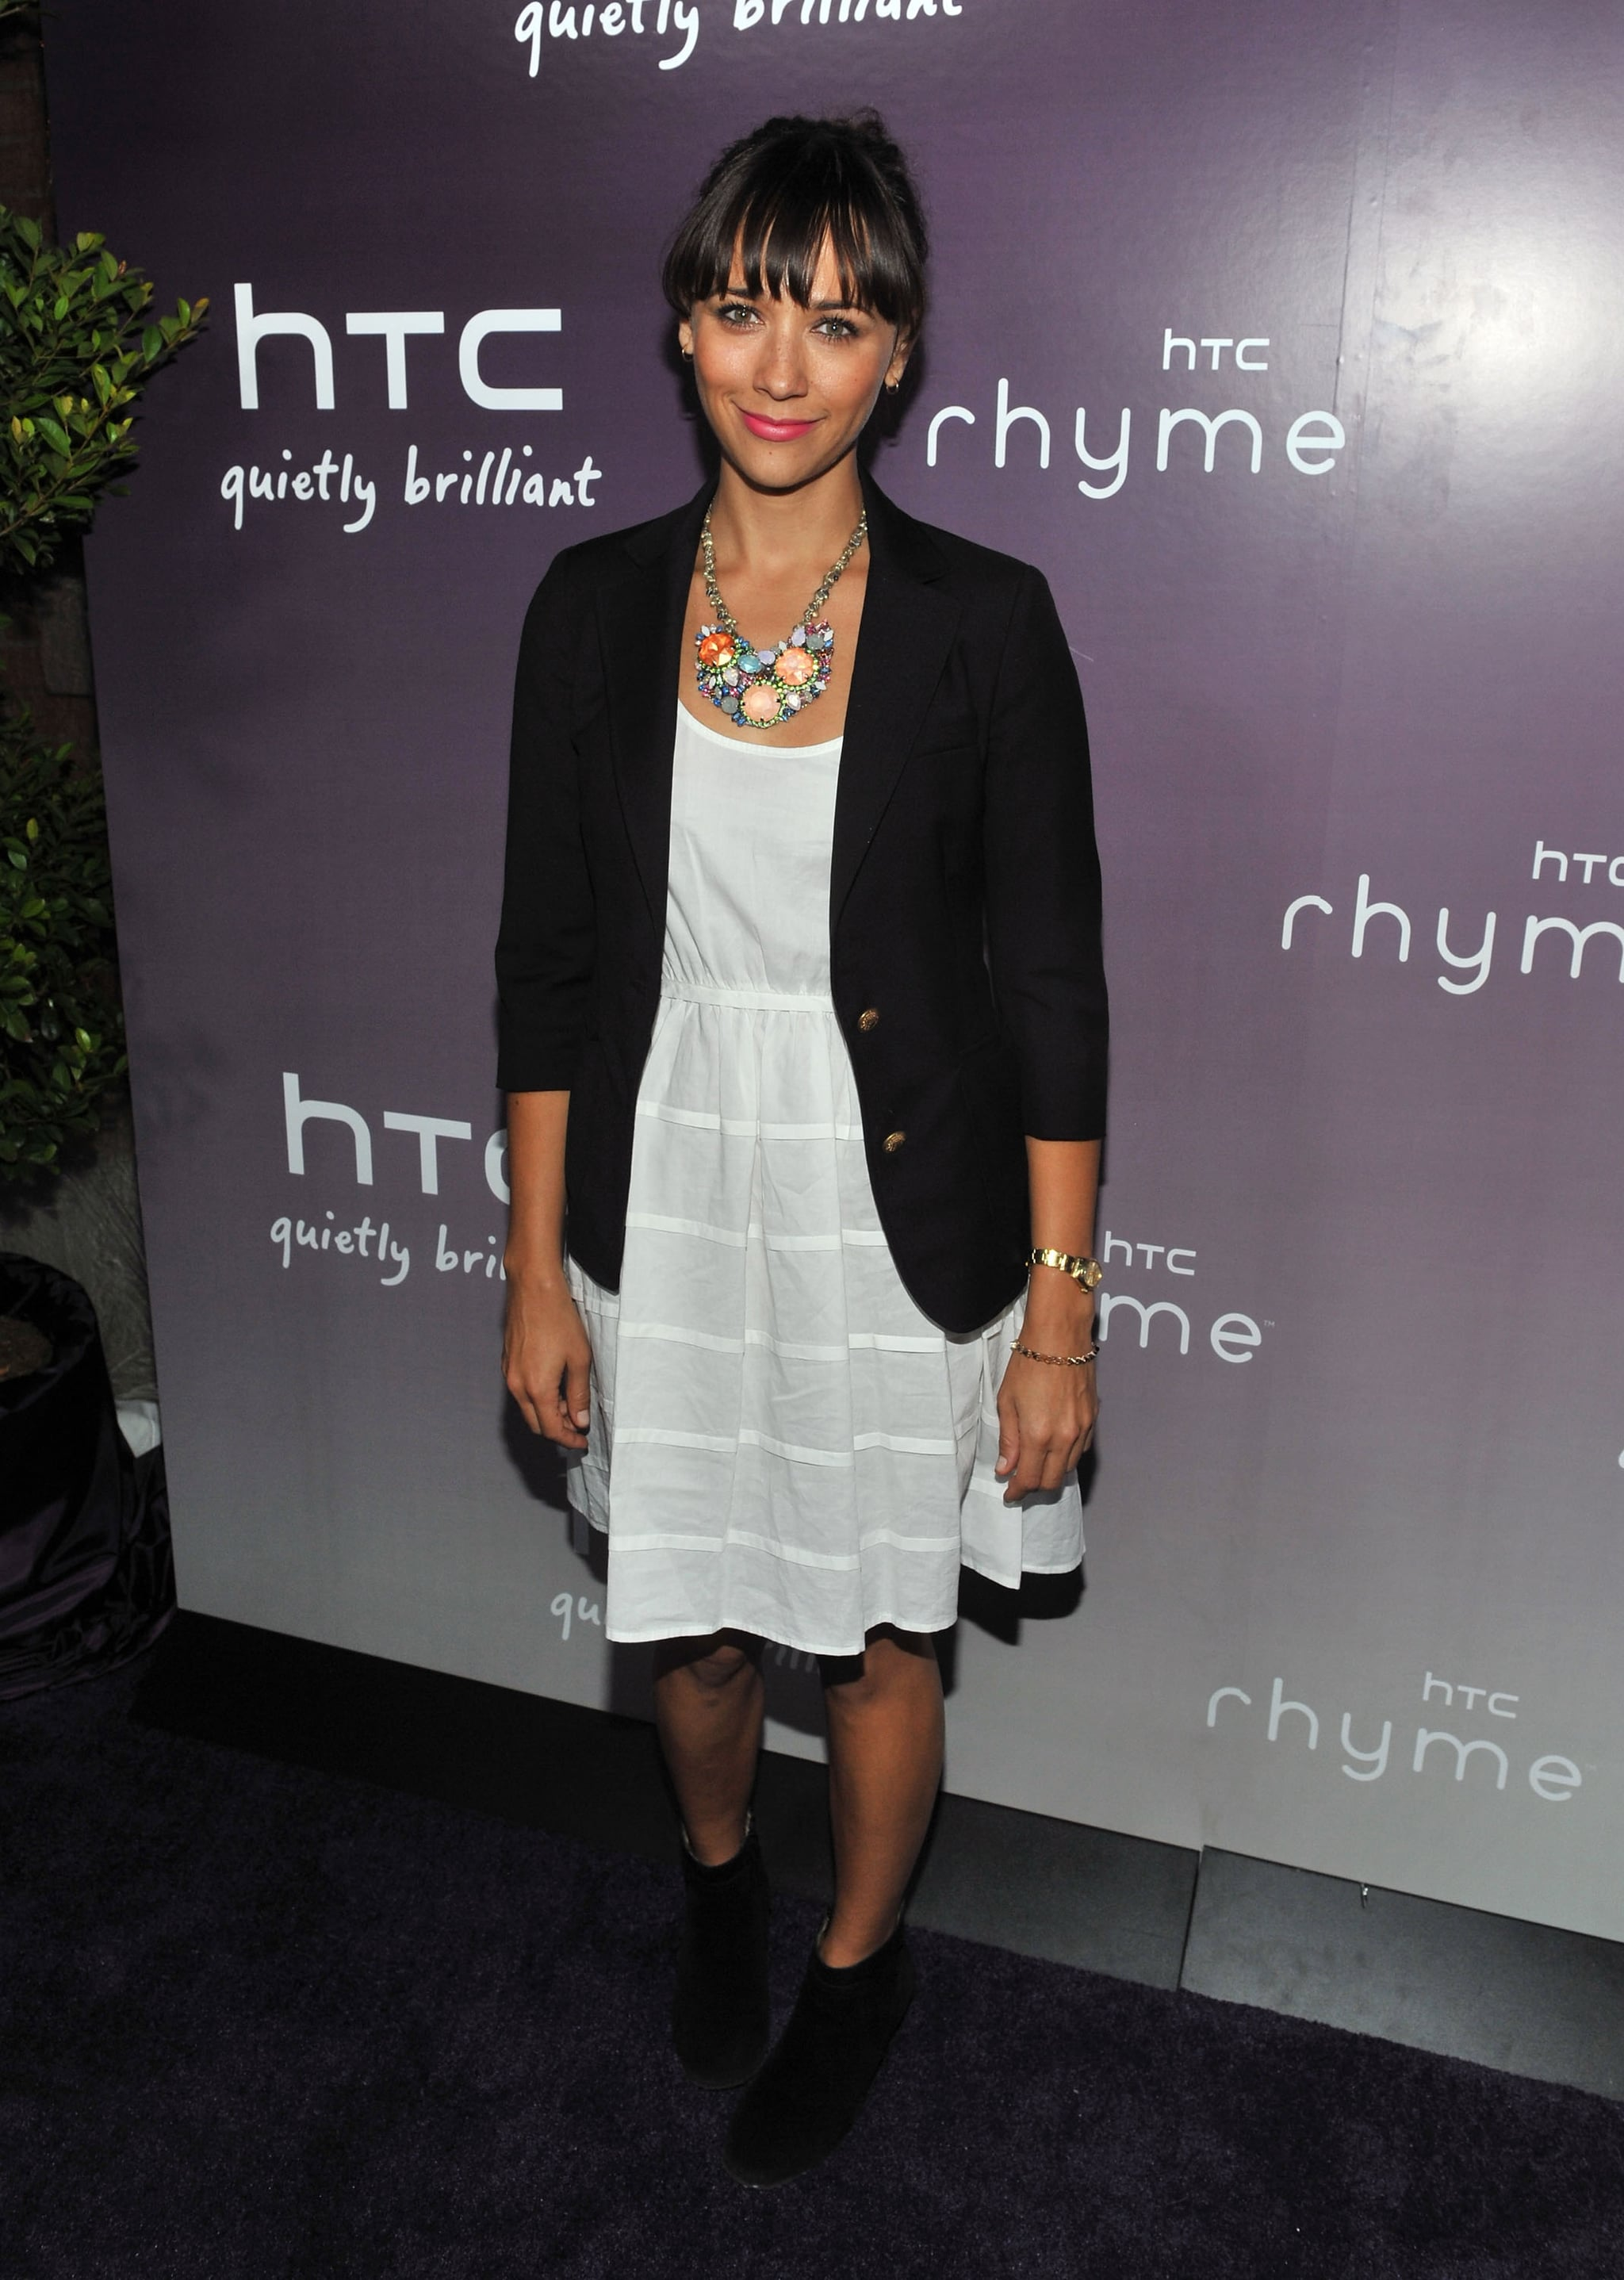 Rashida Jones at the launch of the new HTC Rhyme Android smartphone.